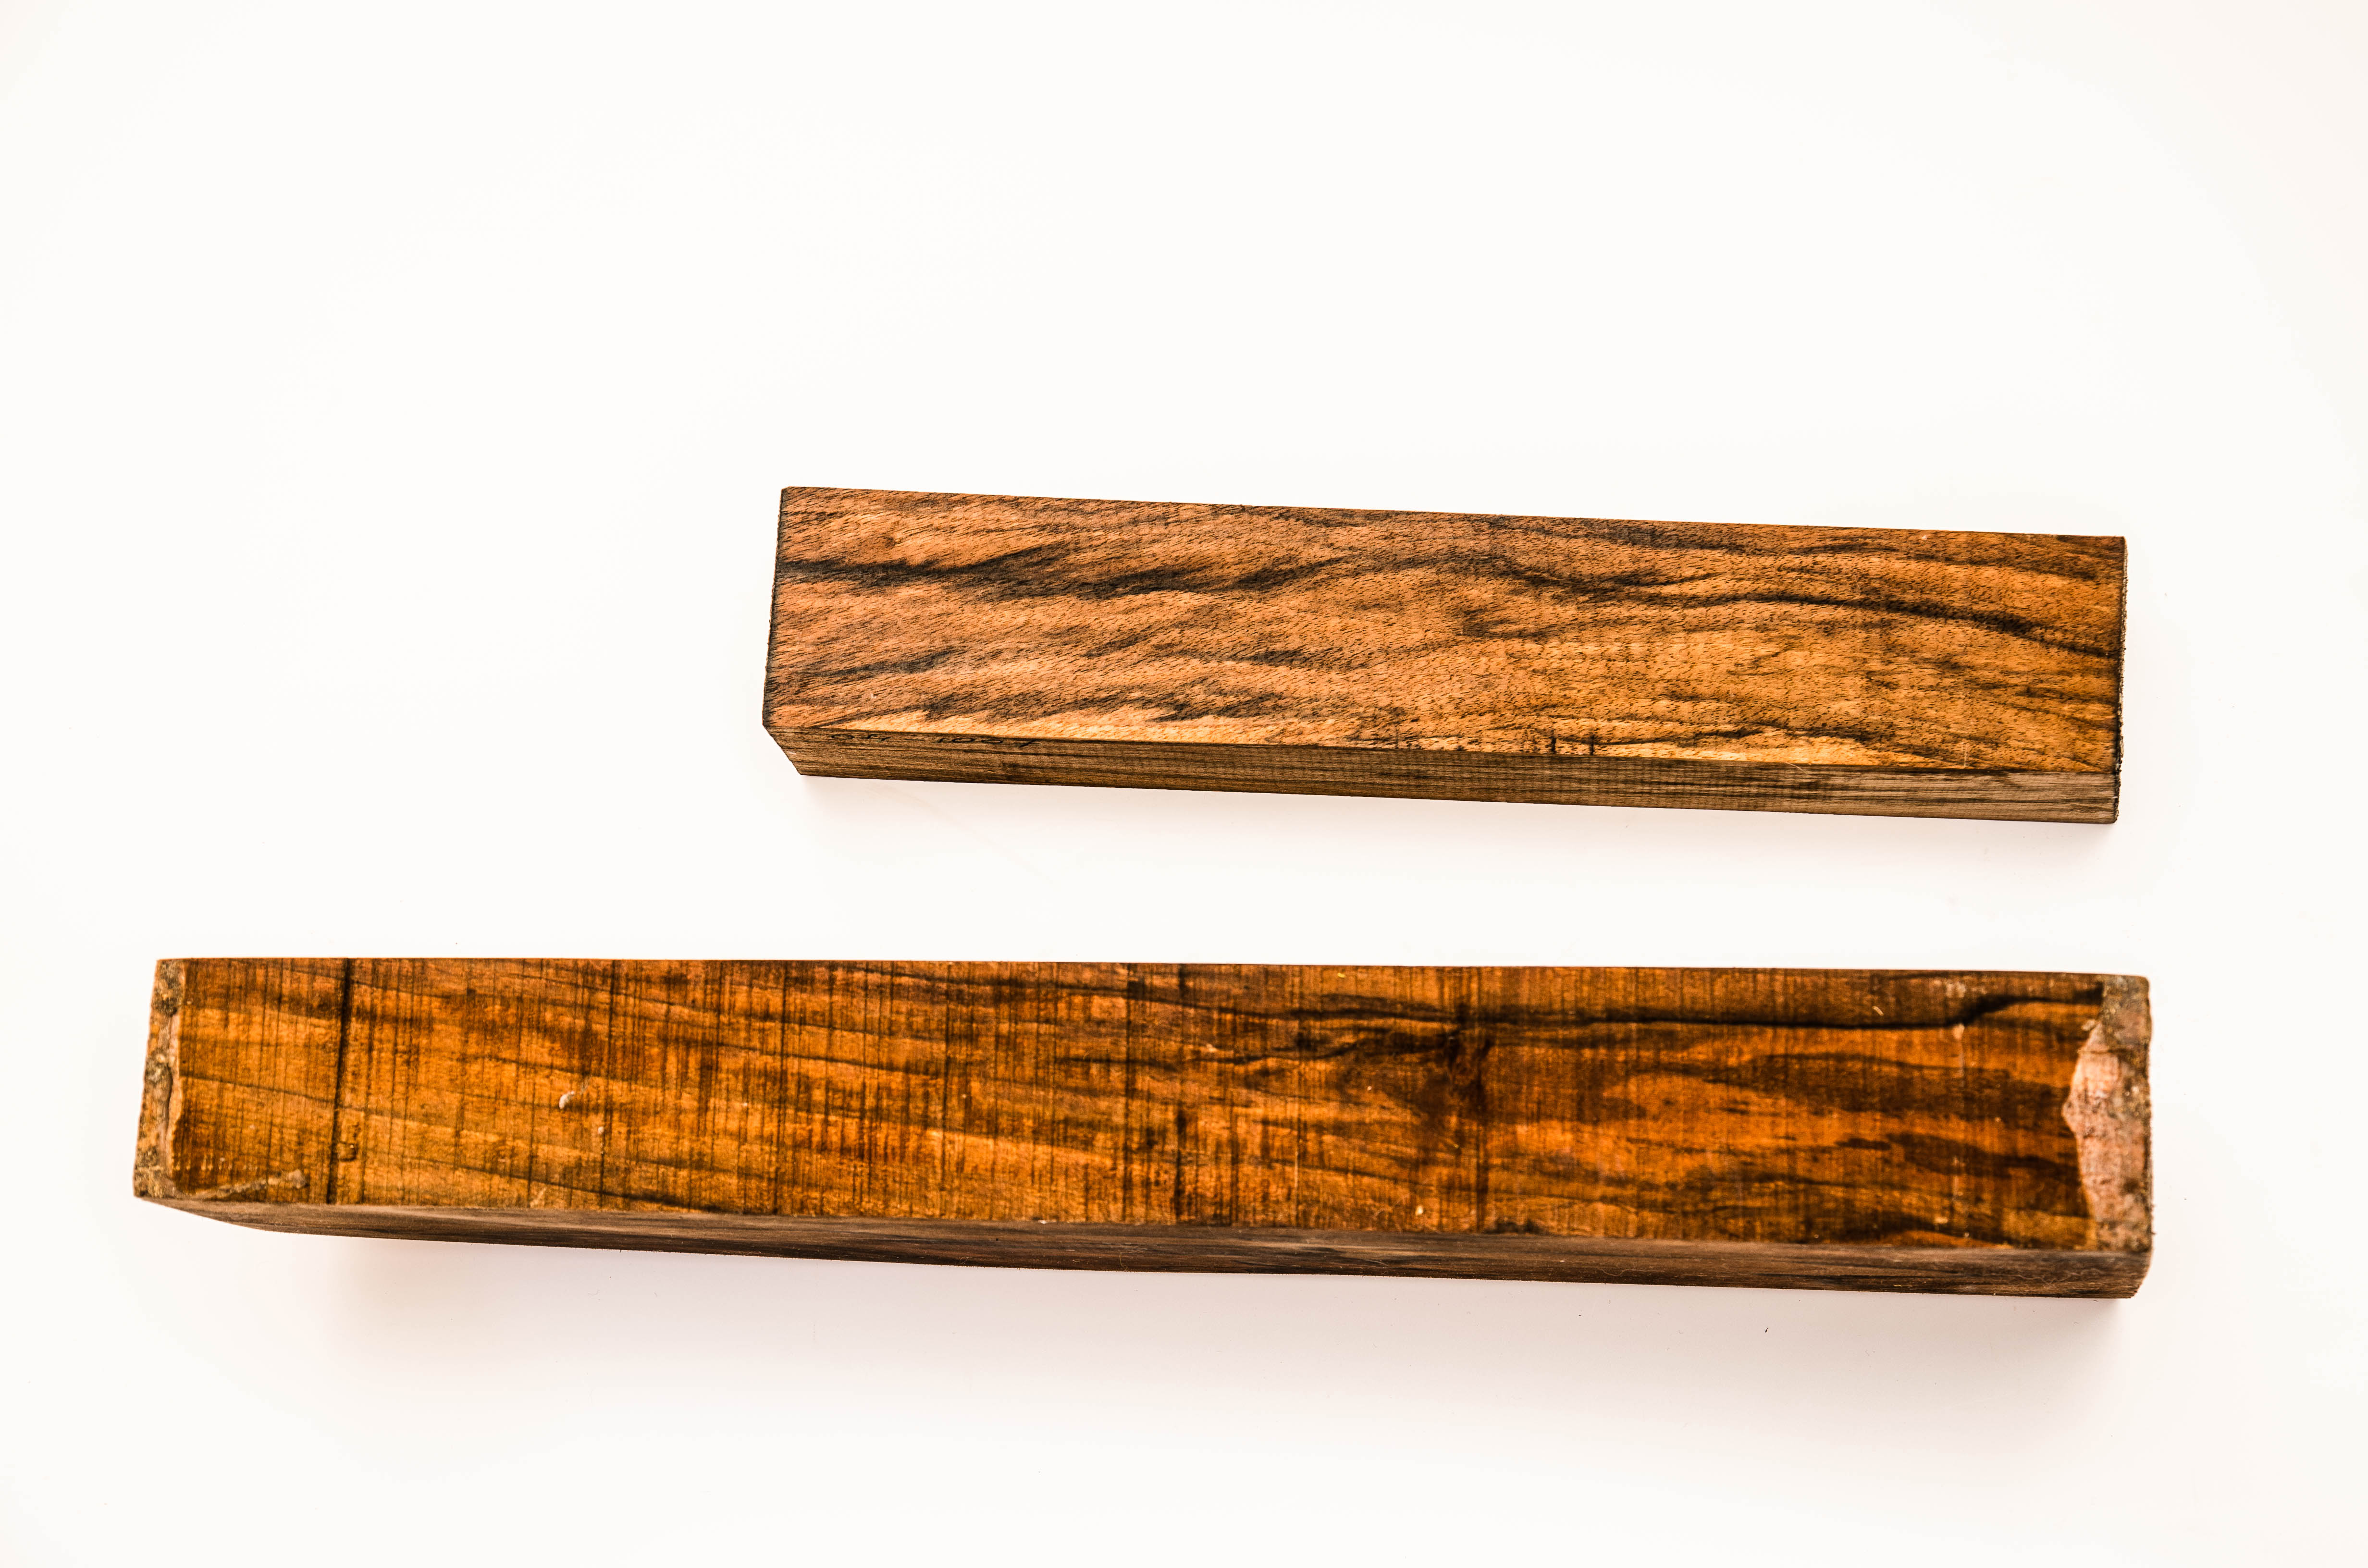 walnut_stock_blanks_for_guns_and_rifles-0447